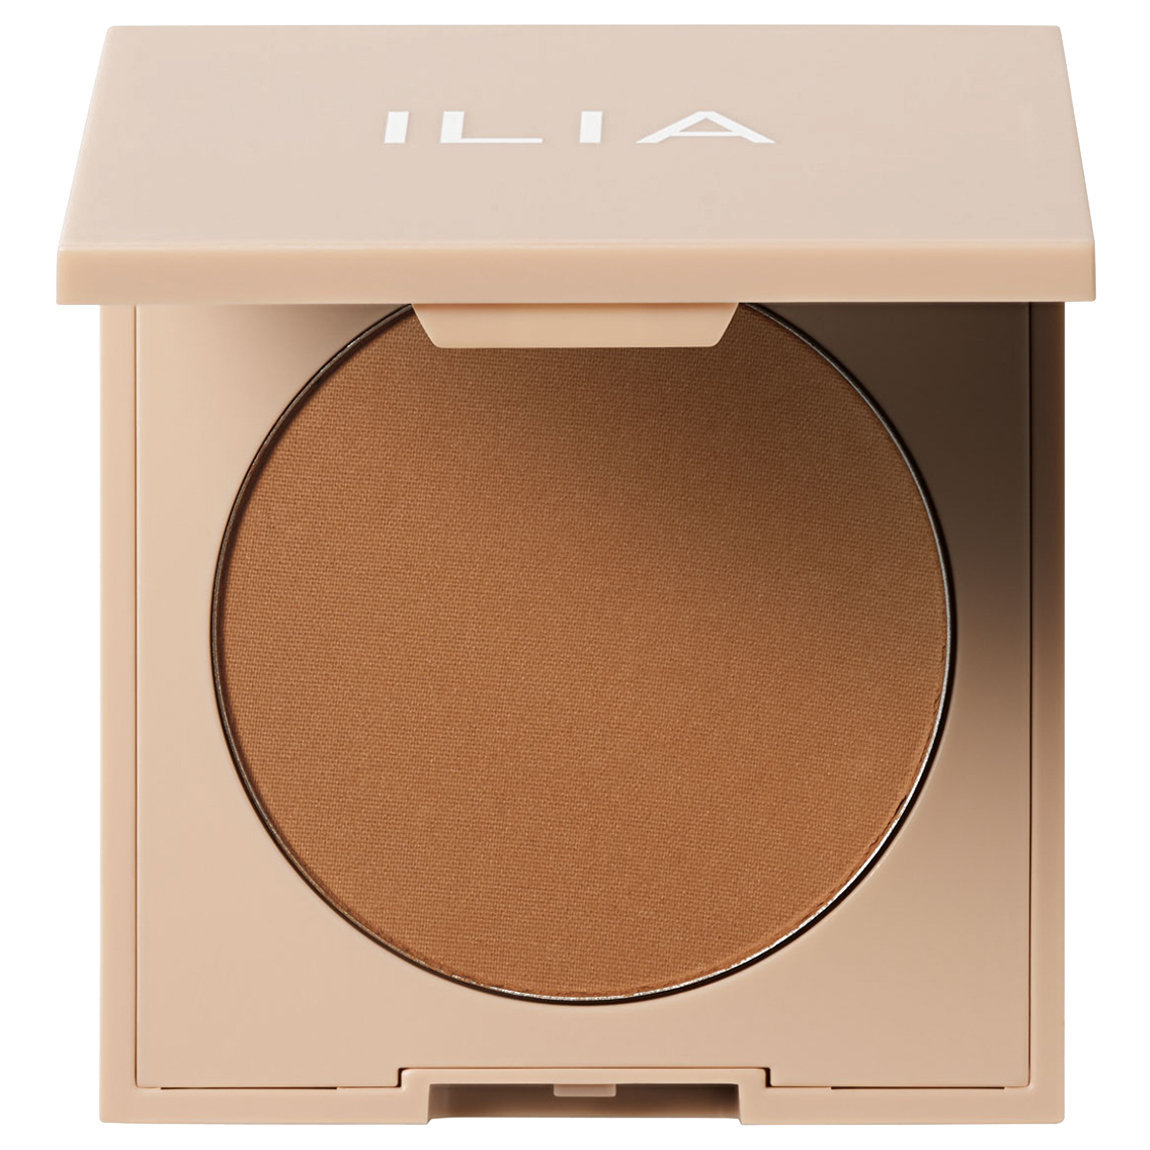 ILIA NightLite Bronzer Powder